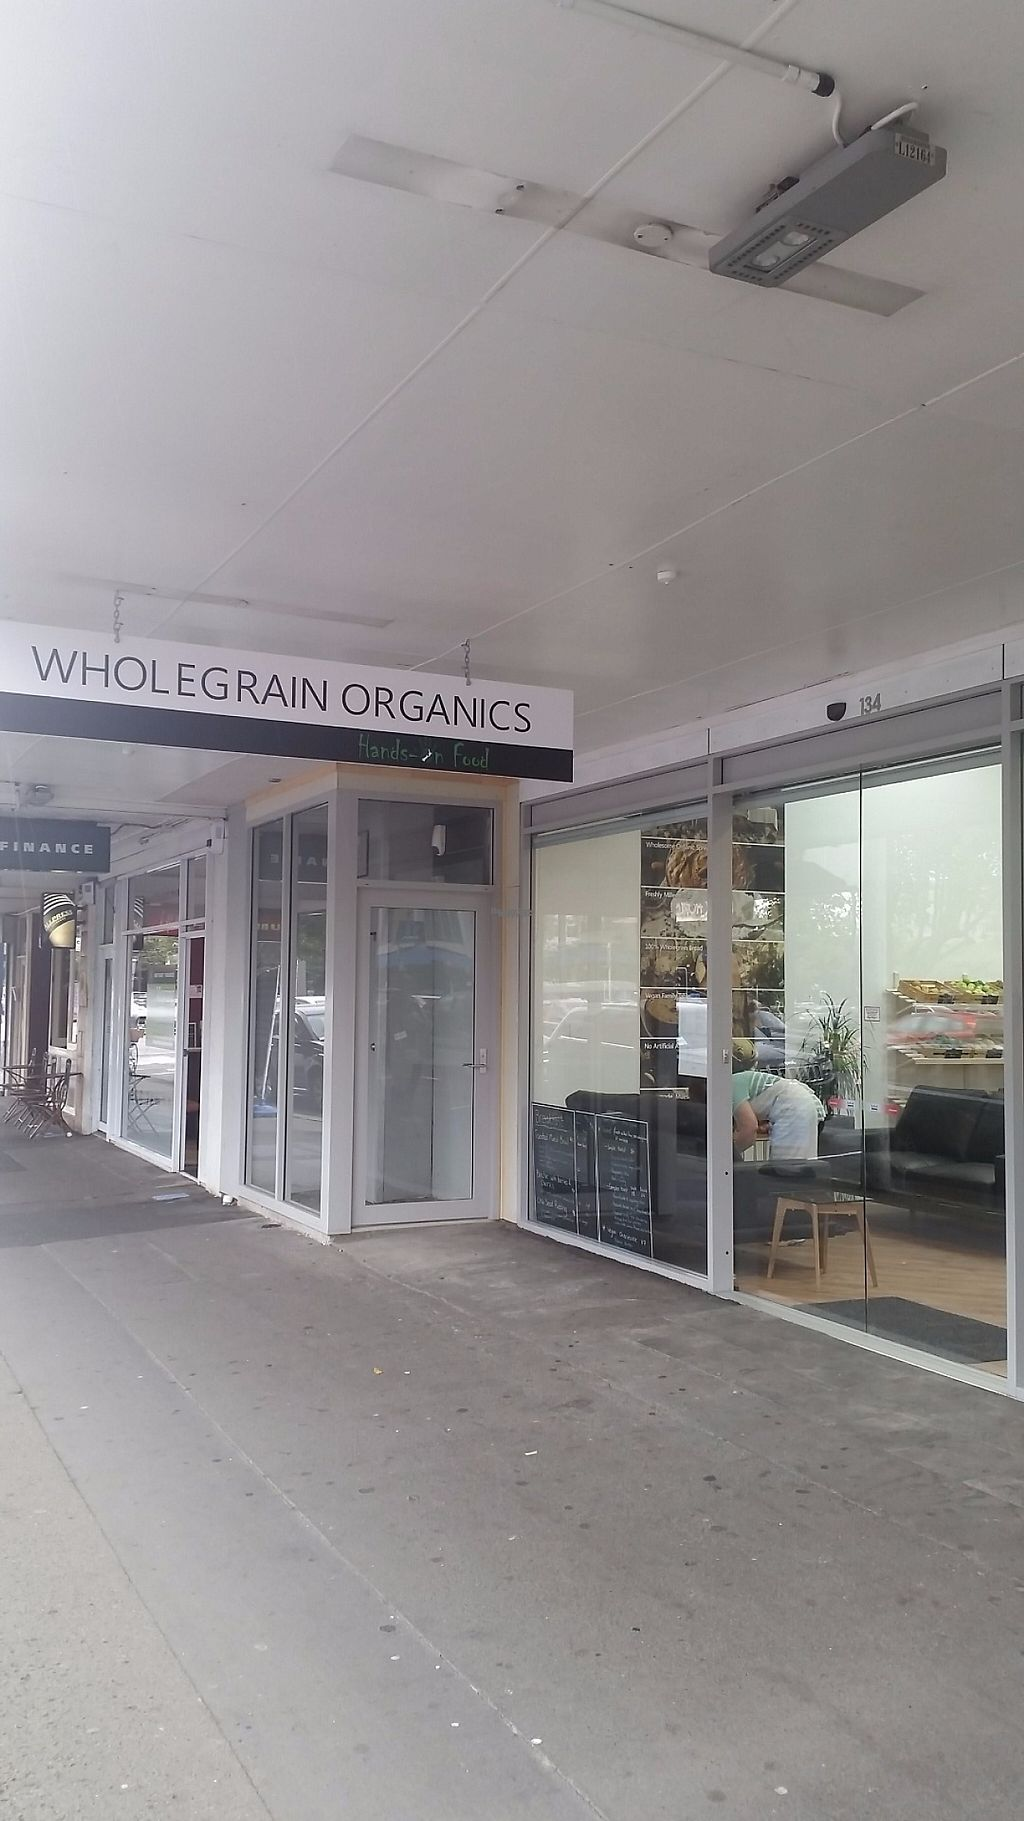 """Photo of Wholegrain Organics  by <a href=""""/members/profile/AndyTheVWDude"""">AndyTheVWDude</a> <br/>134 The Square ~ Palmerston North <br/> April 13, 2017  - <a href='/contact/abuse/image/90377/247709'>Report</a>"""